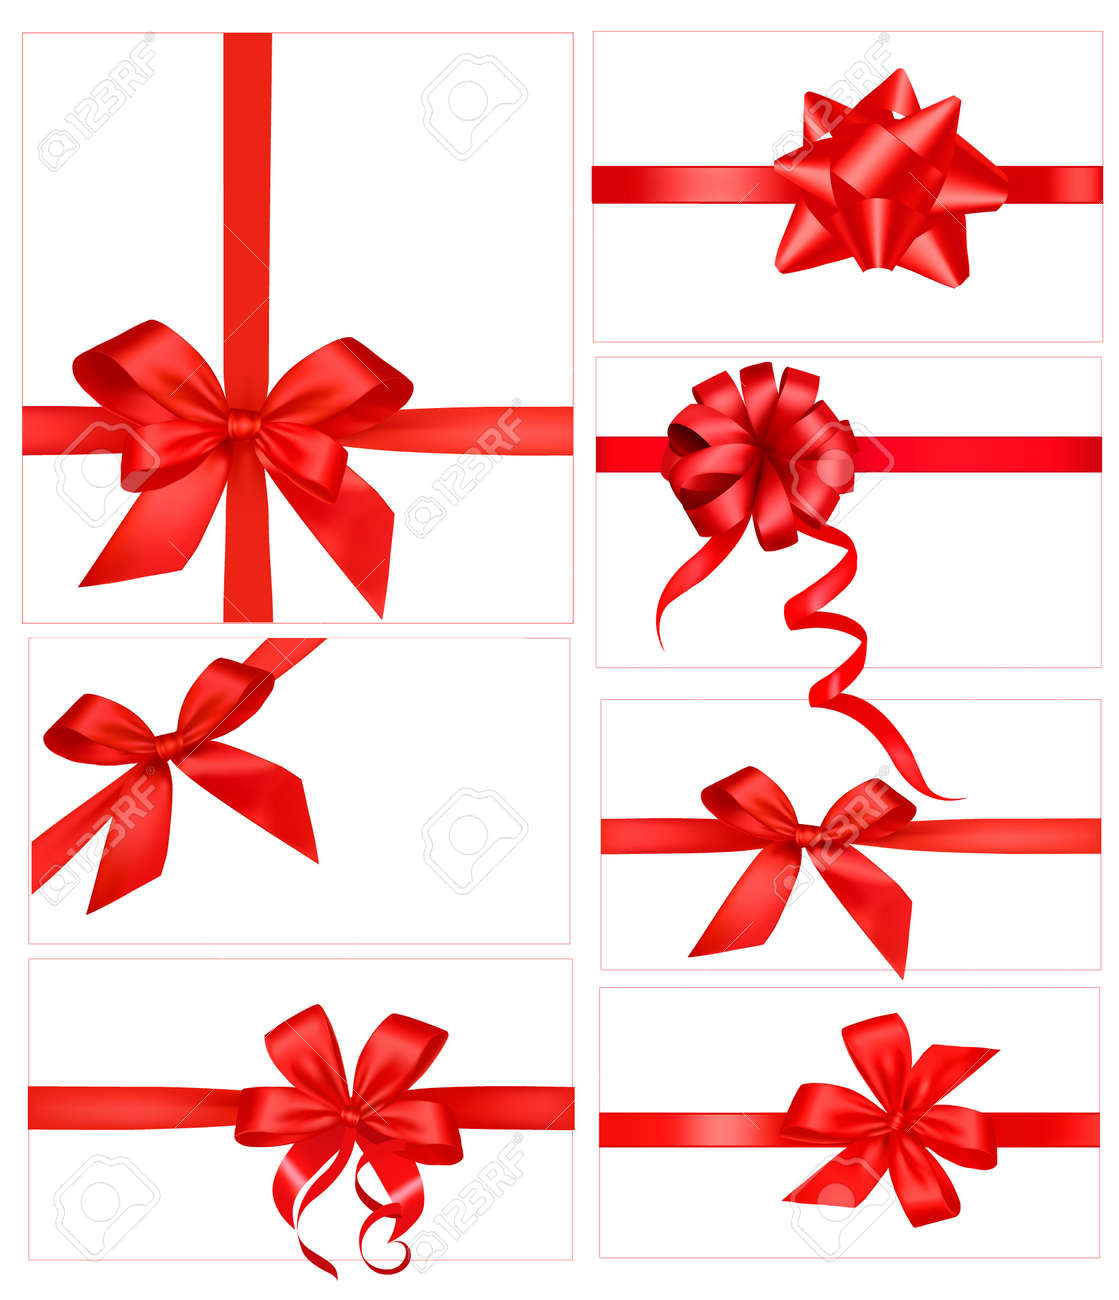 Red gift bows border with clipping path for easy background removing - Red Bow Big Set Of Red Gift Bows With Ribbons Illustration